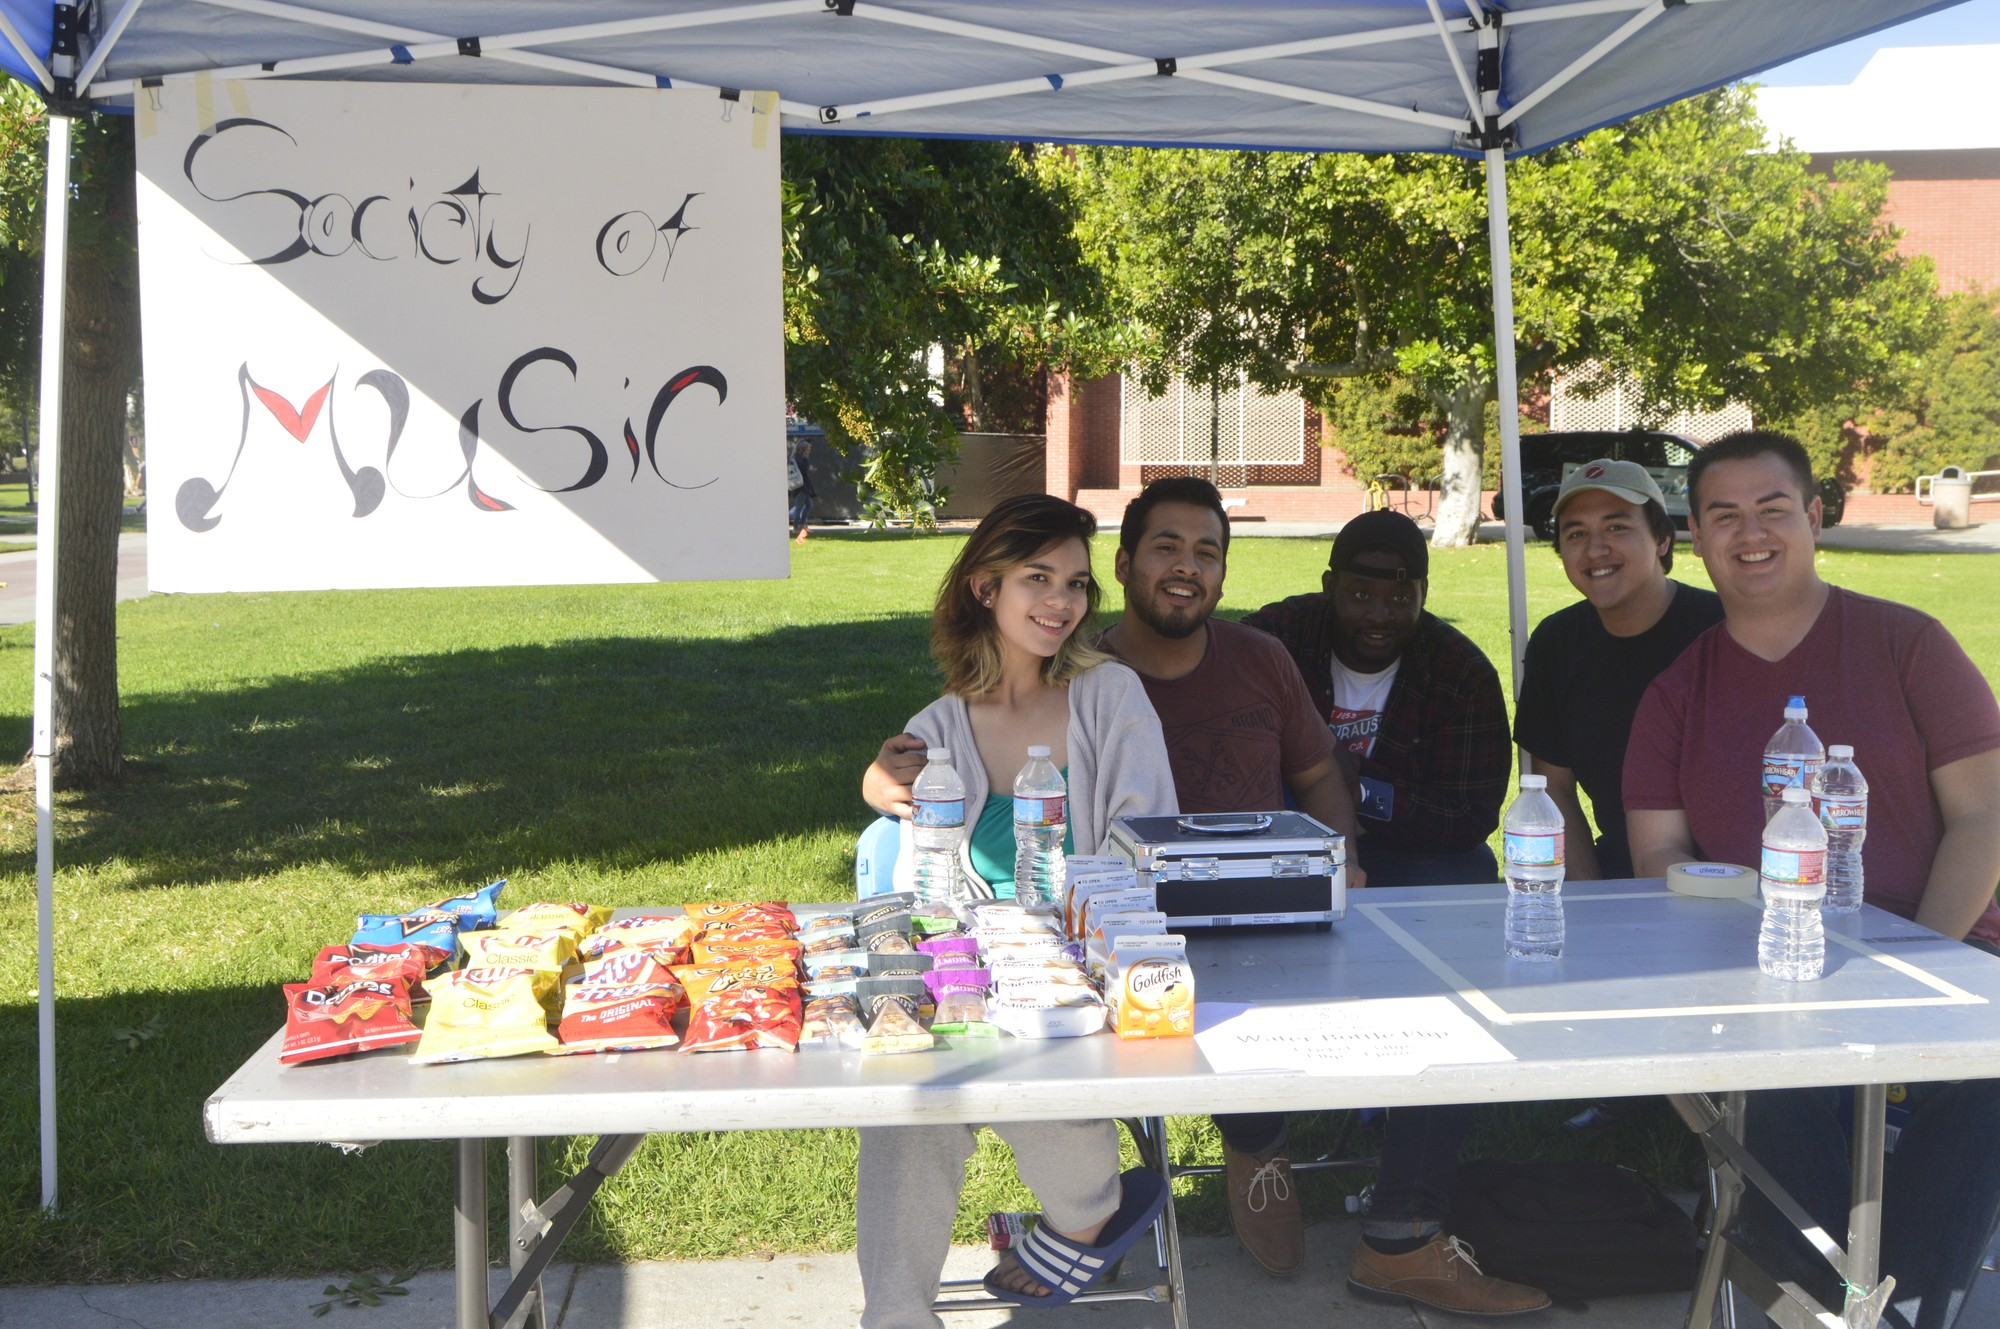 'Fund Fair' provides good fun and games for students